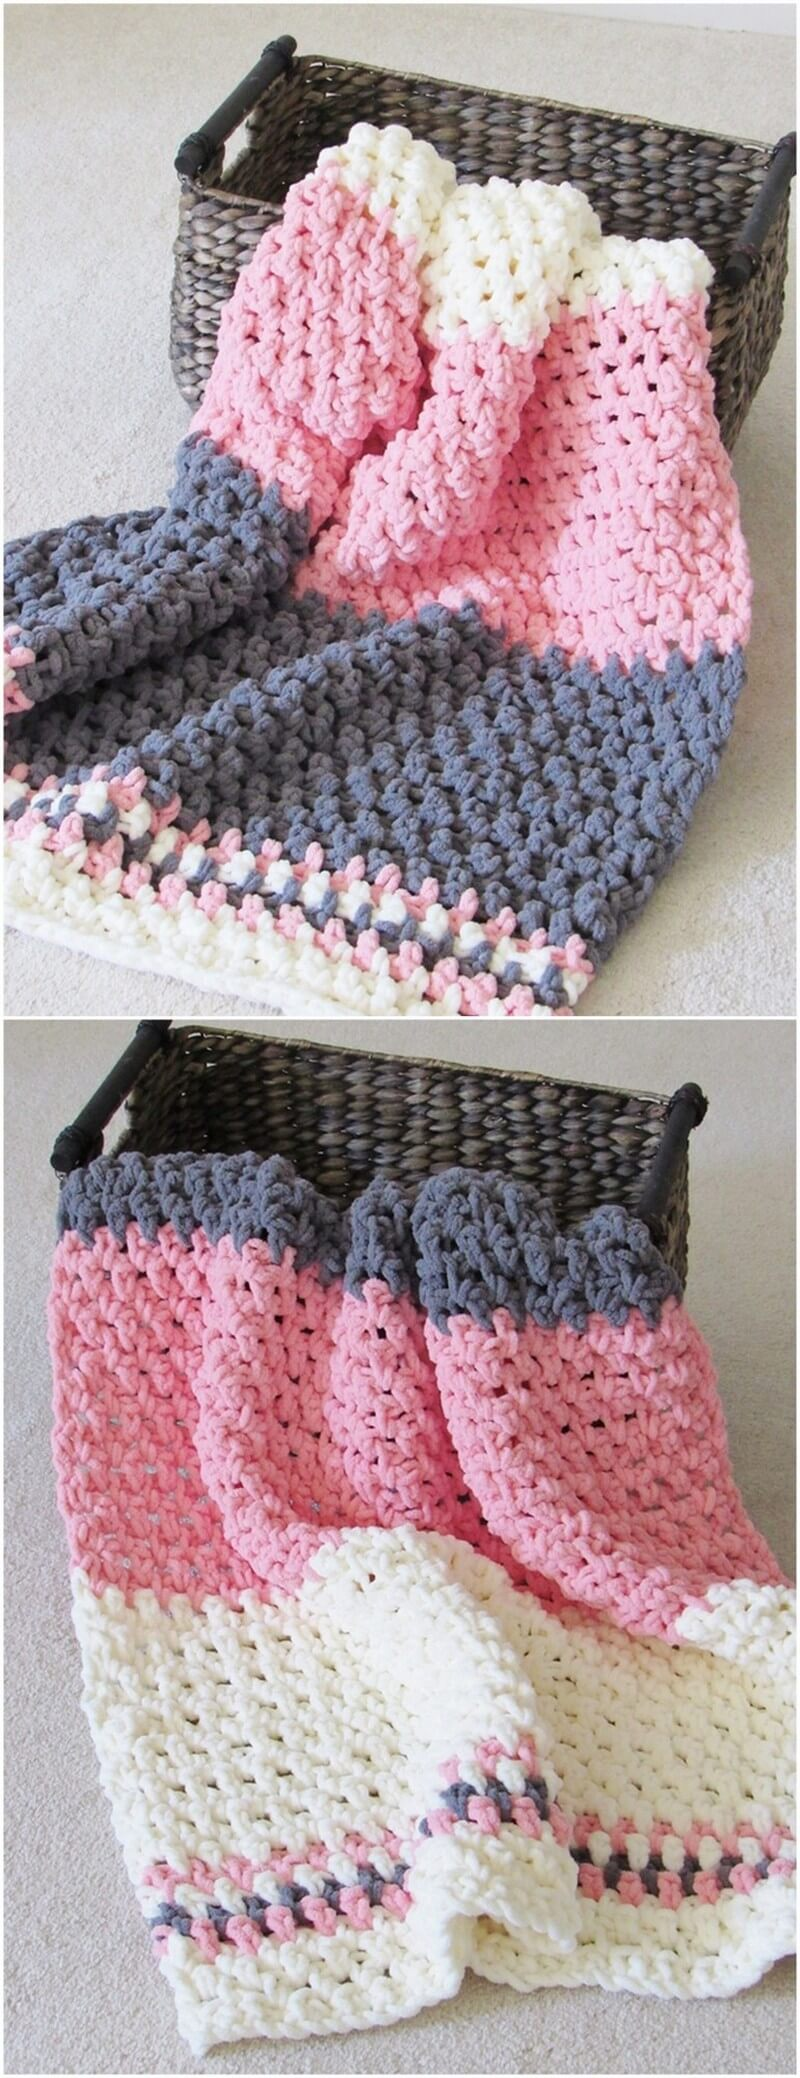 Easy Crochet Blanket Pattern (16)